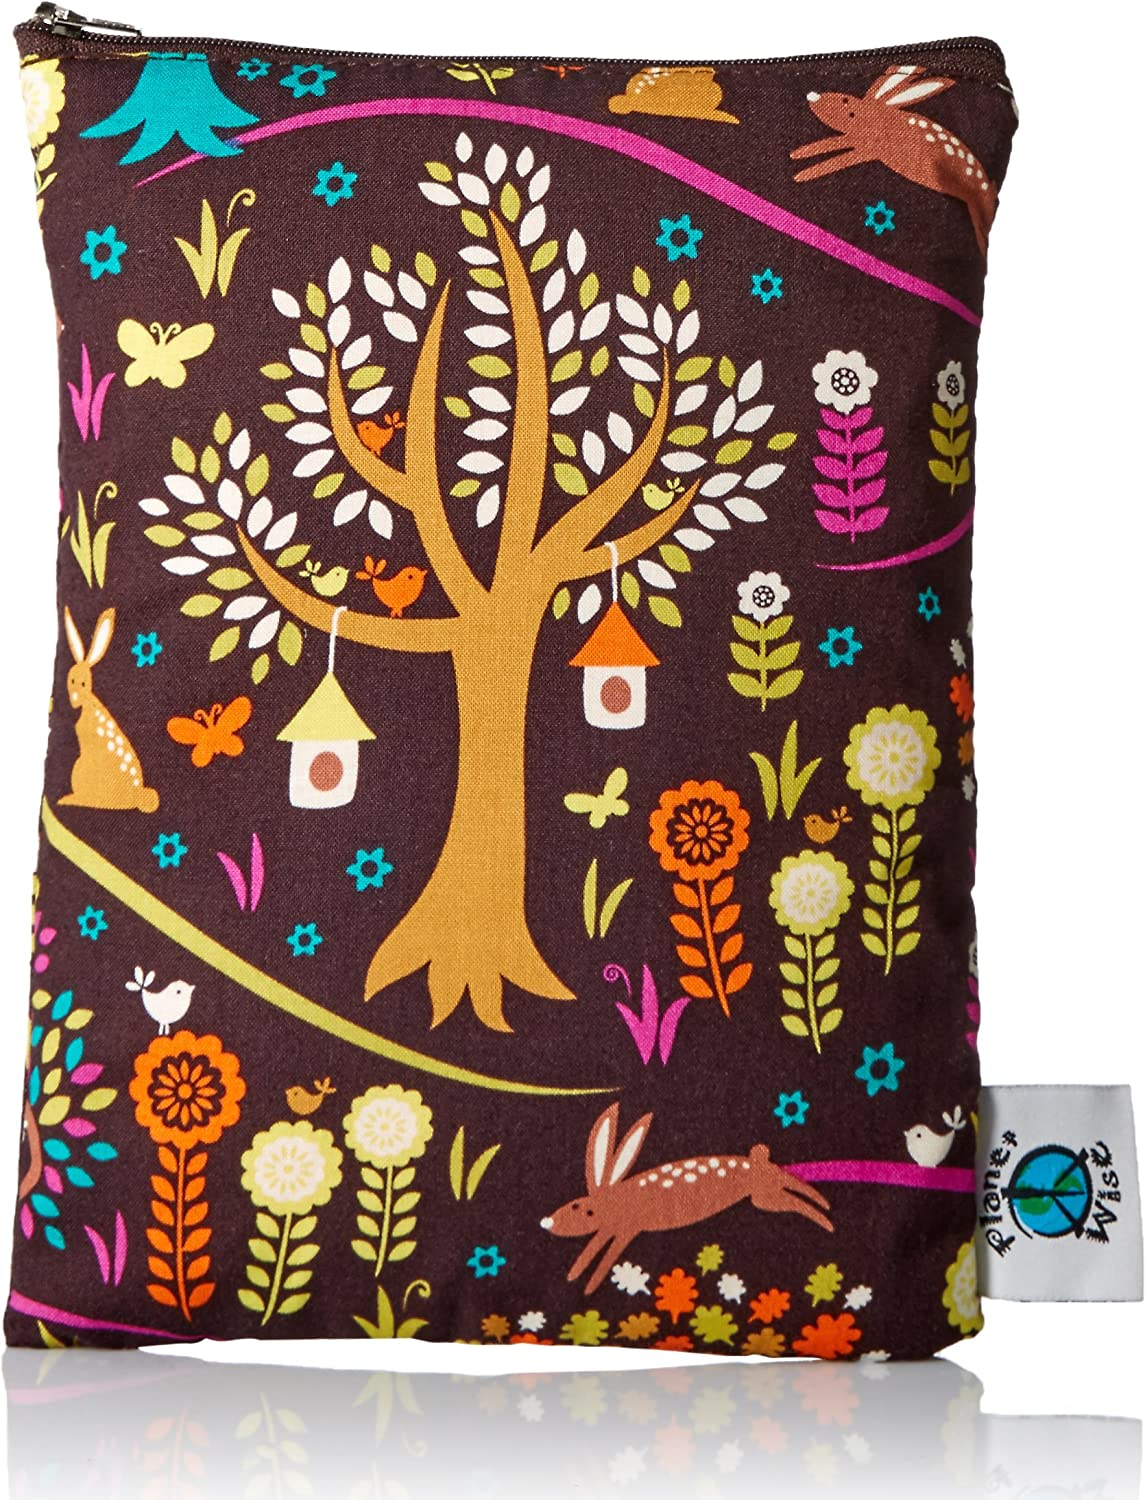 Planet Wise wiederverwendbar Wet Windel Bag (Jewel Woods) Planet Wise Inc. PWWBMDJewelWood